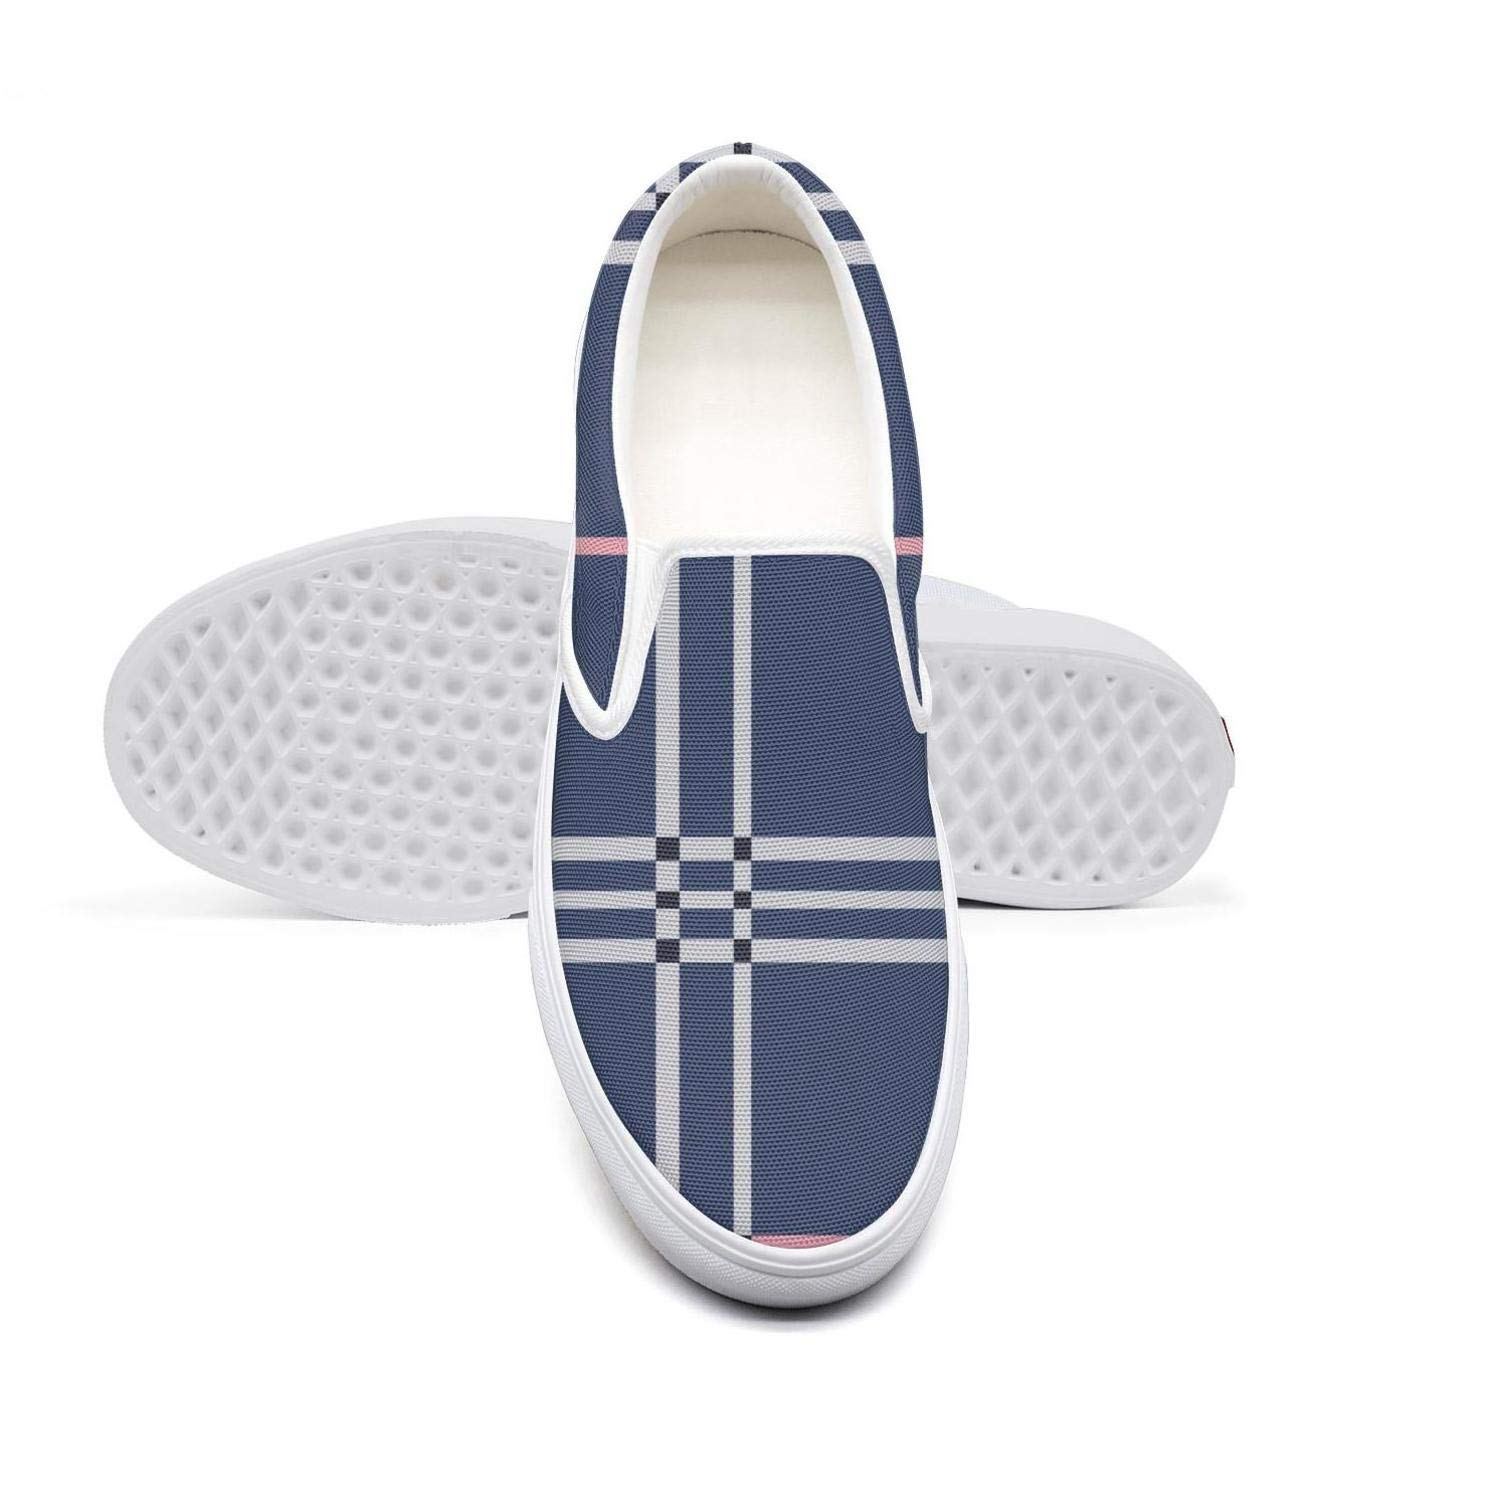 Plaid Printing Blue Casual Loafers Womens Designer Slip on Canvas Training Shoes